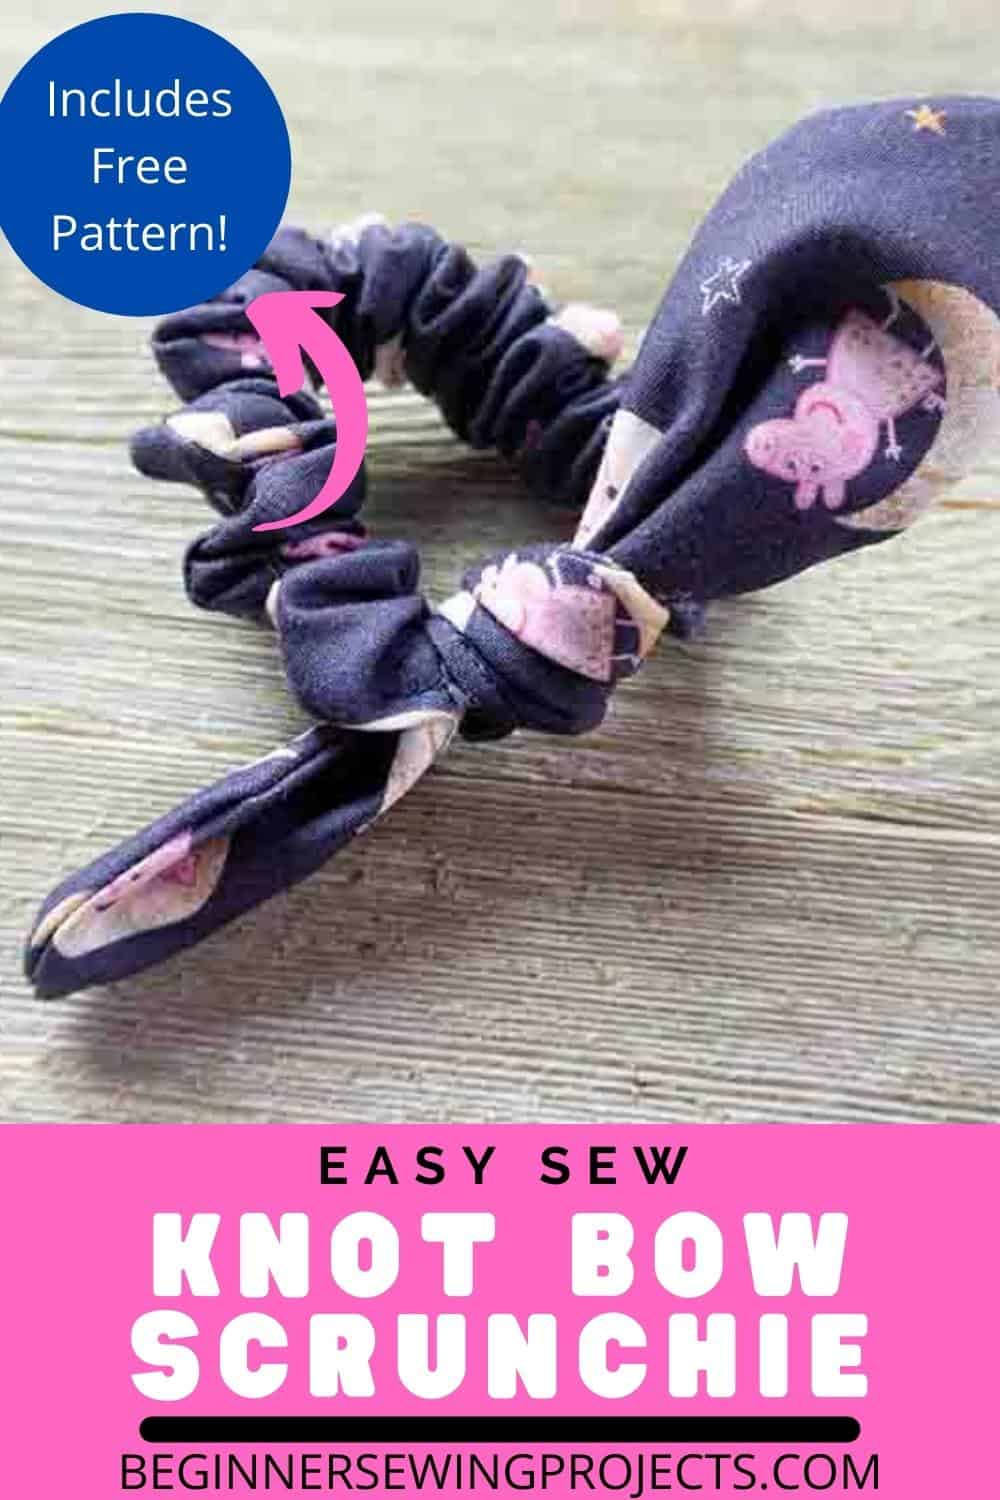 Easy Sew Knot Bow Scrunchie